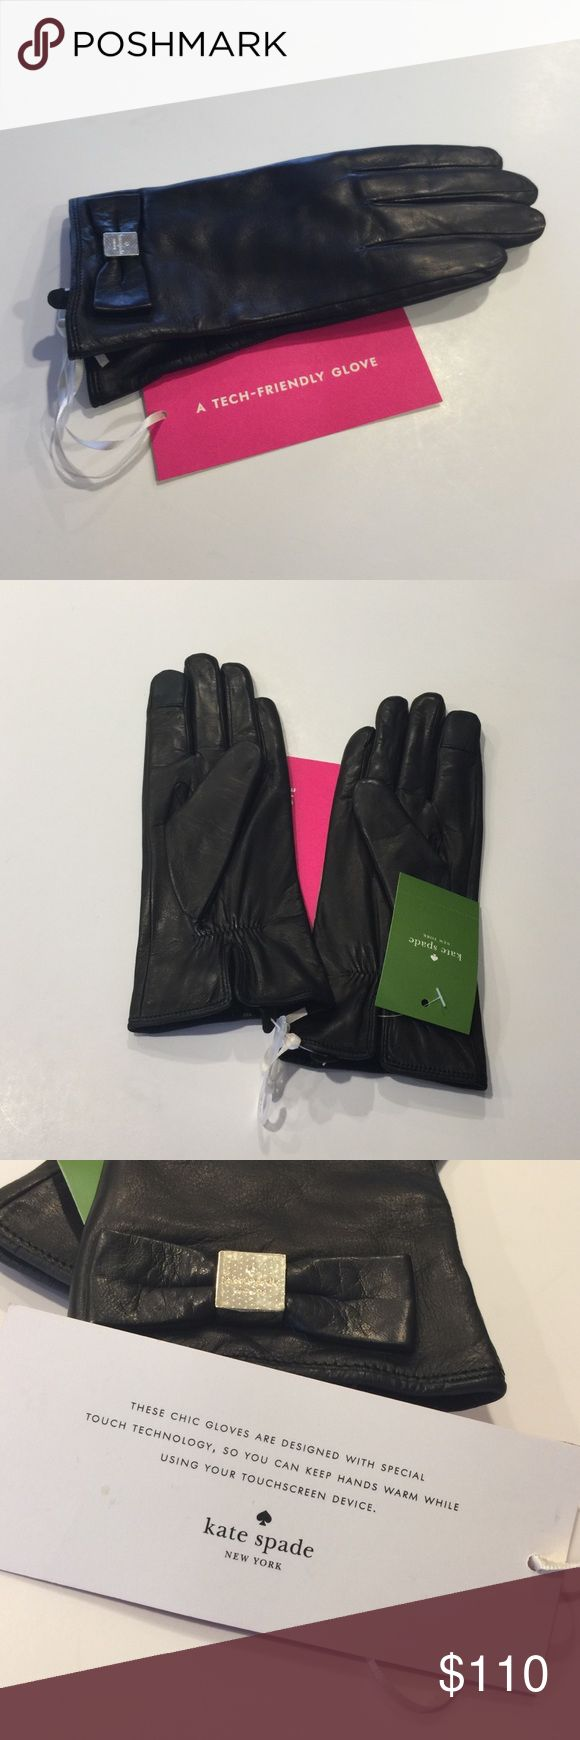 New Kate Spade Leather Tech Gloves New Kate Spade Leather Bow Tech Gloves in Black size Small - $128 at Kate Spade now in store and online. Signature hardware bow glove KS 1000212. Lamb leather with warm polyester lining 💟 Smart phone friendly! kate spade Accessories Gloves & Mittens